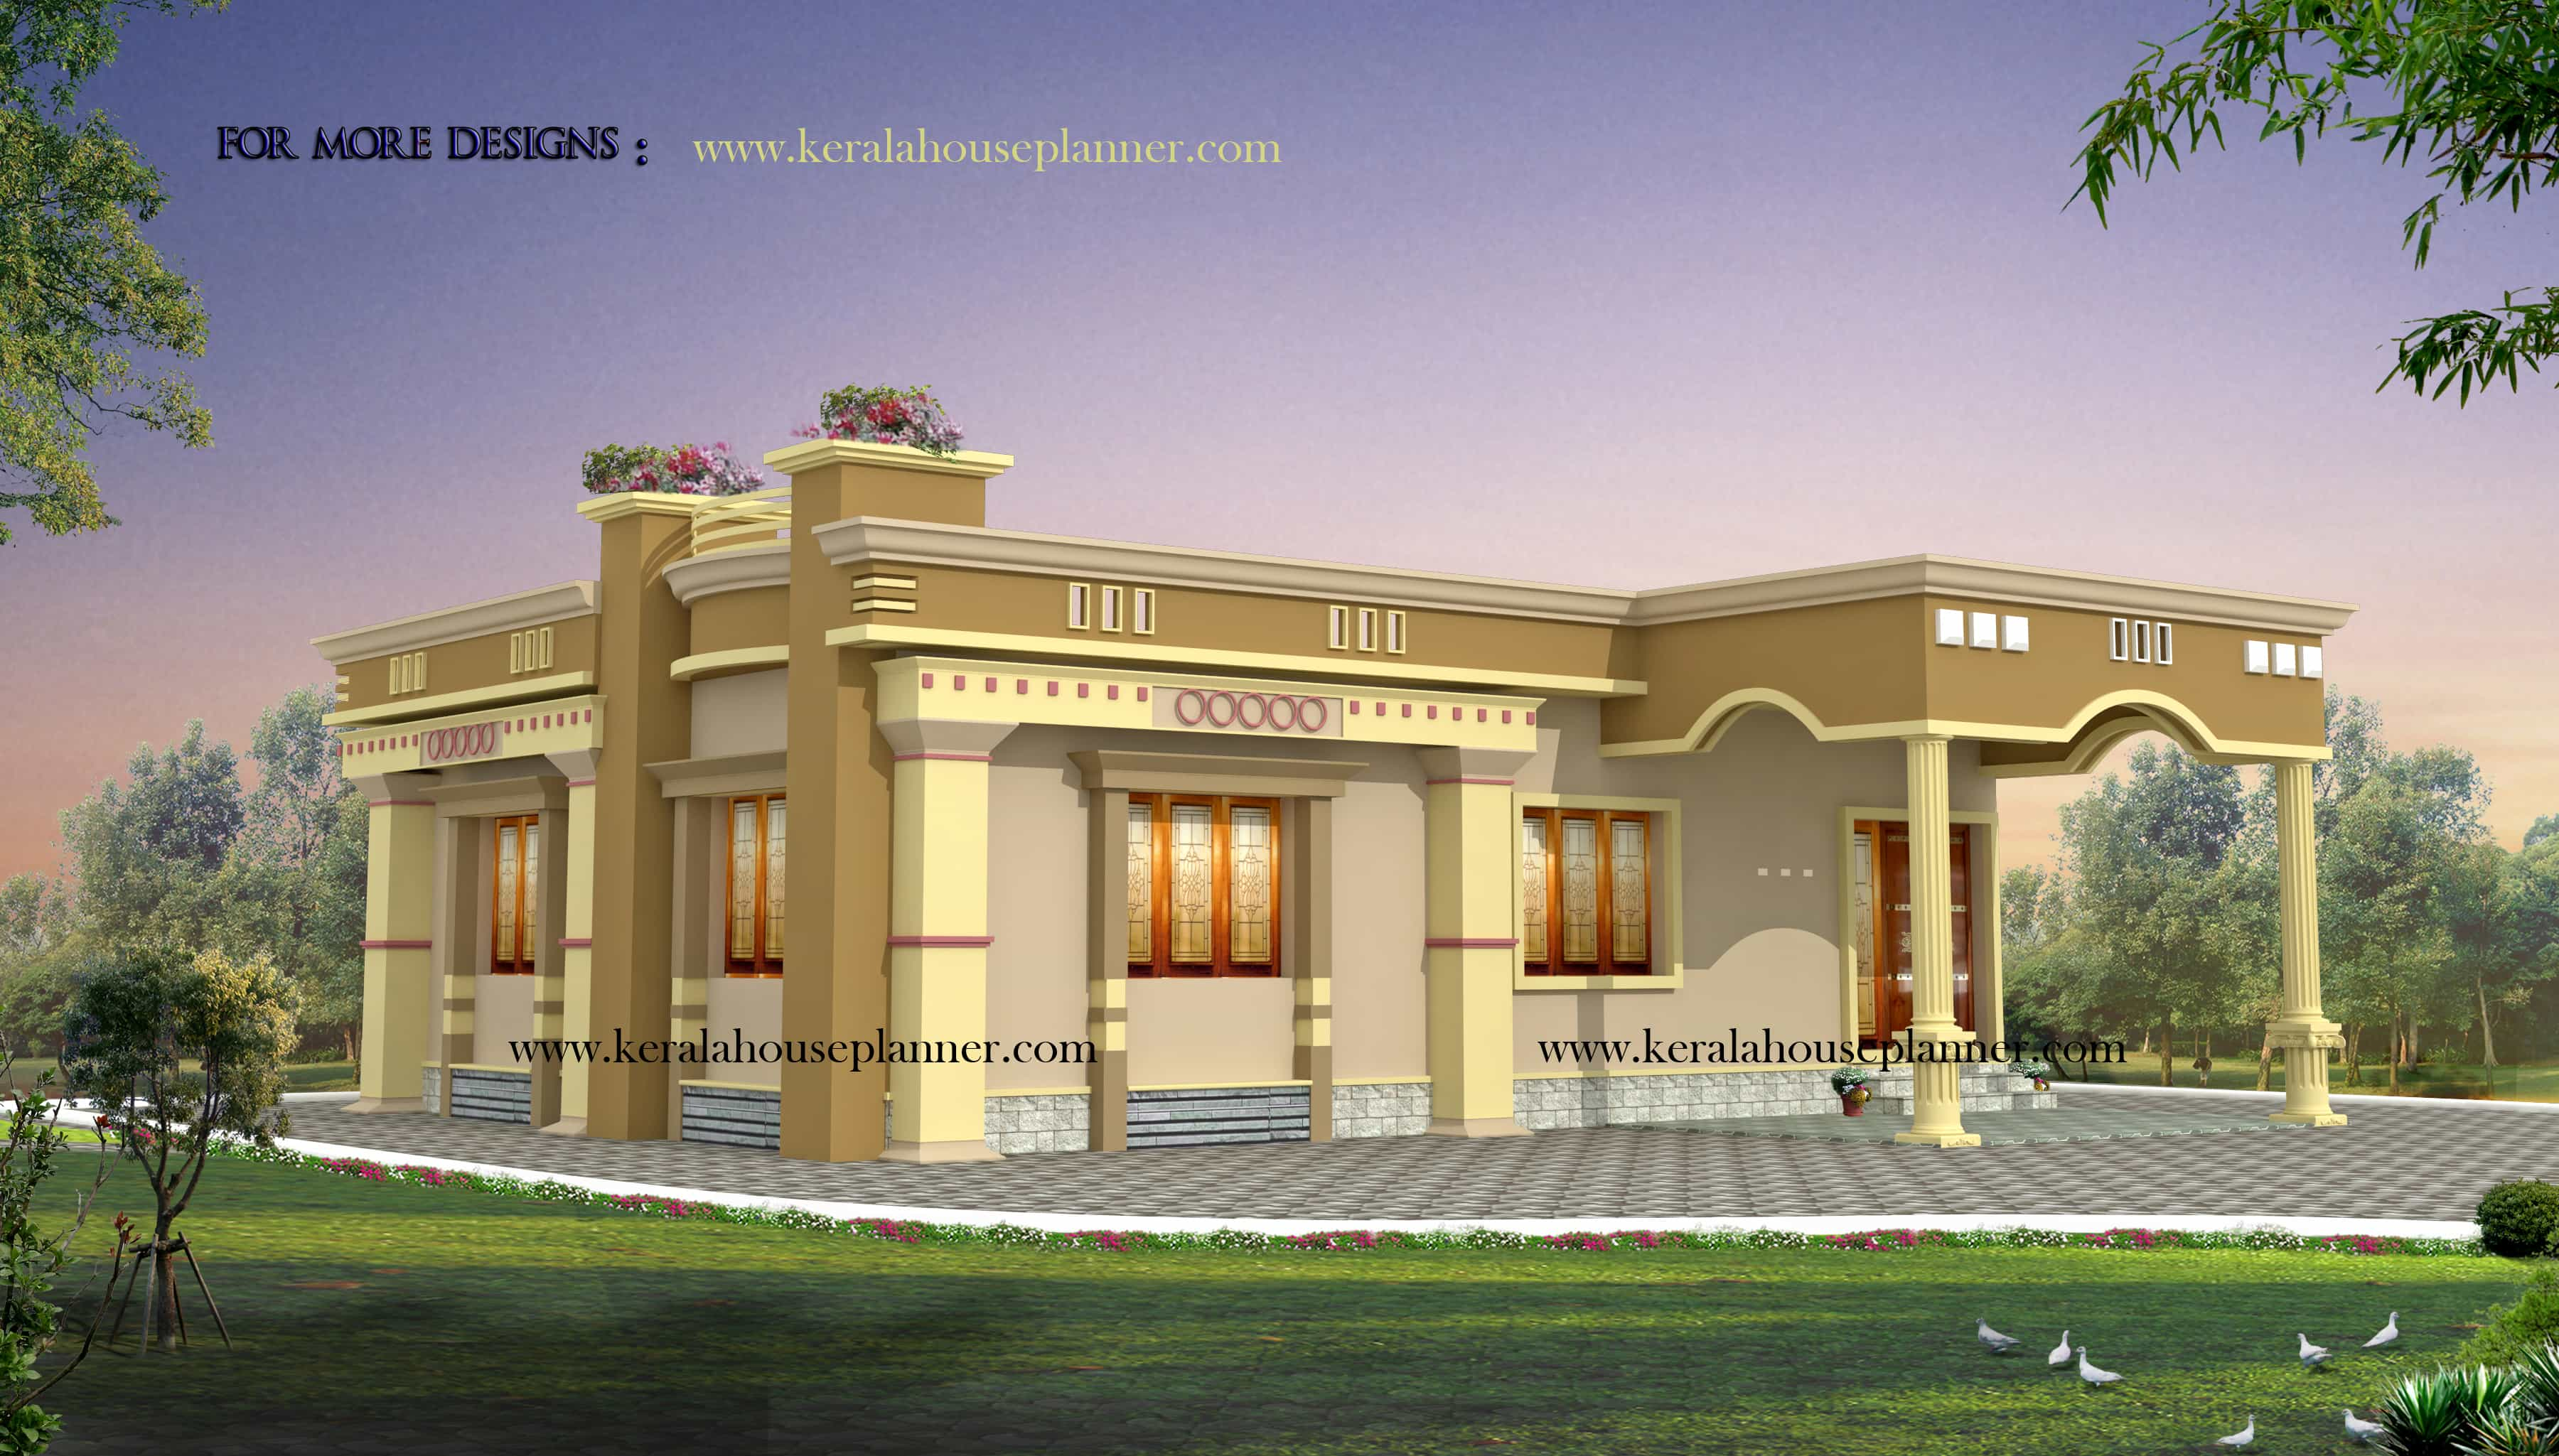 Kerala house plans 1200 sq ft with photos khp for Housing plans kerala